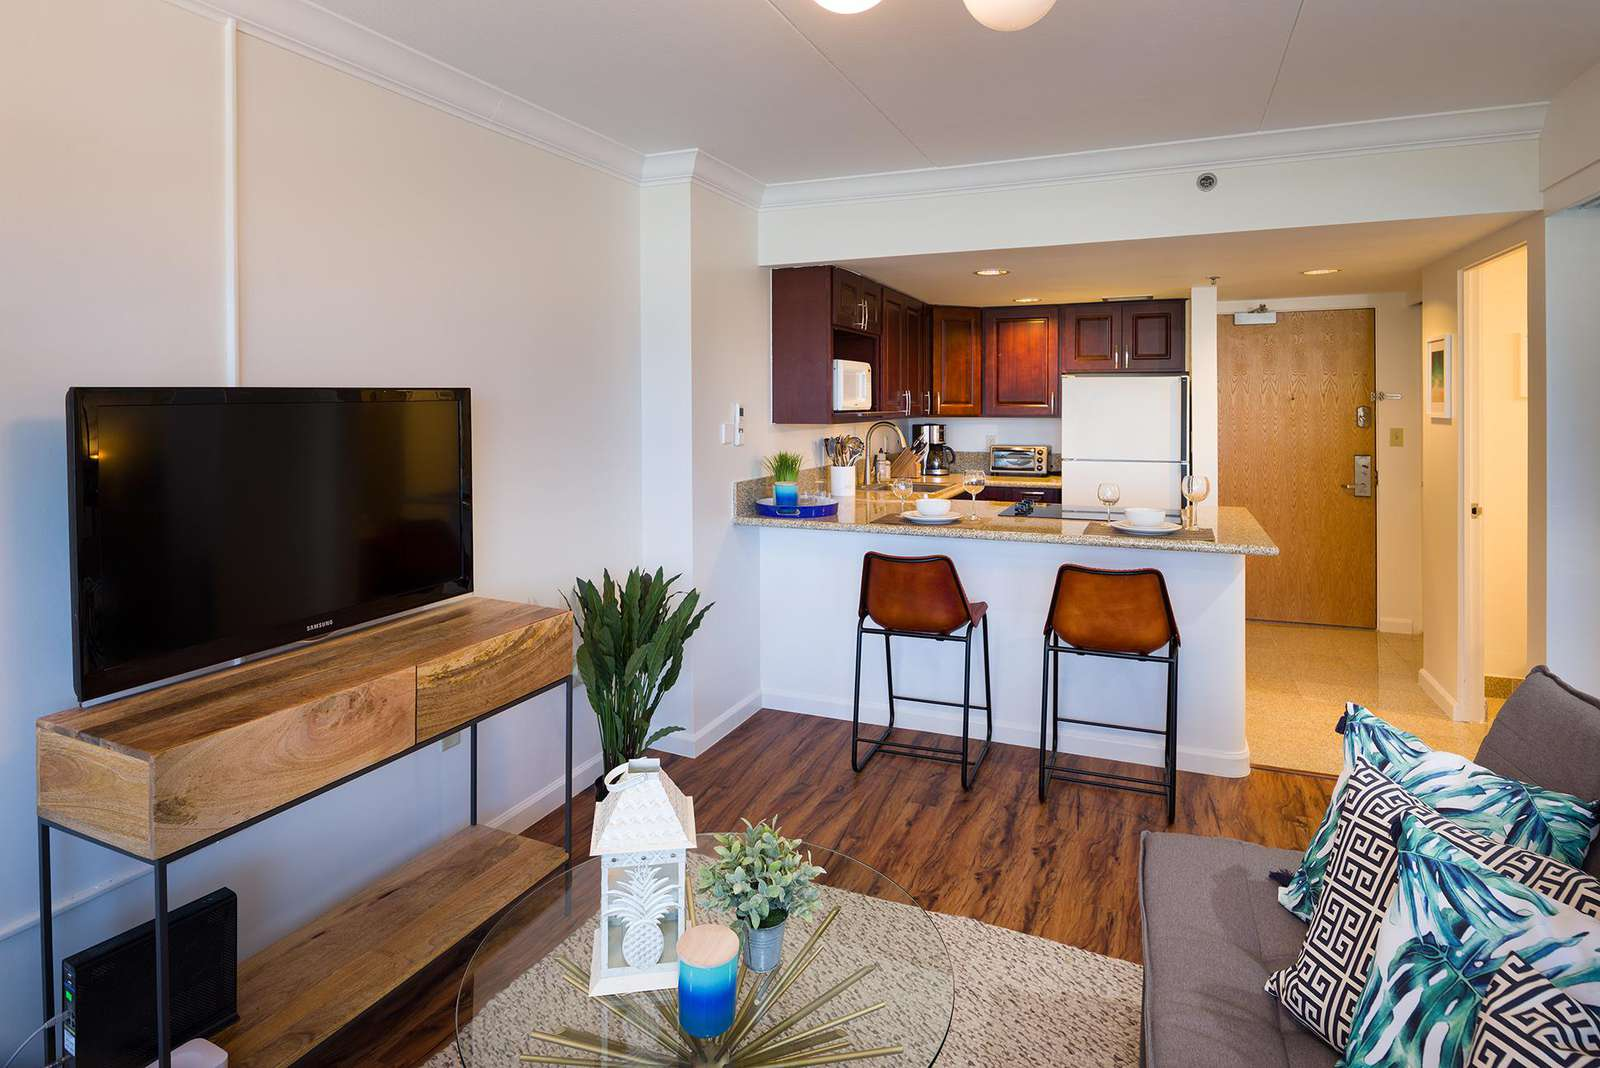 Open Layout from the Living Room to Kitchen